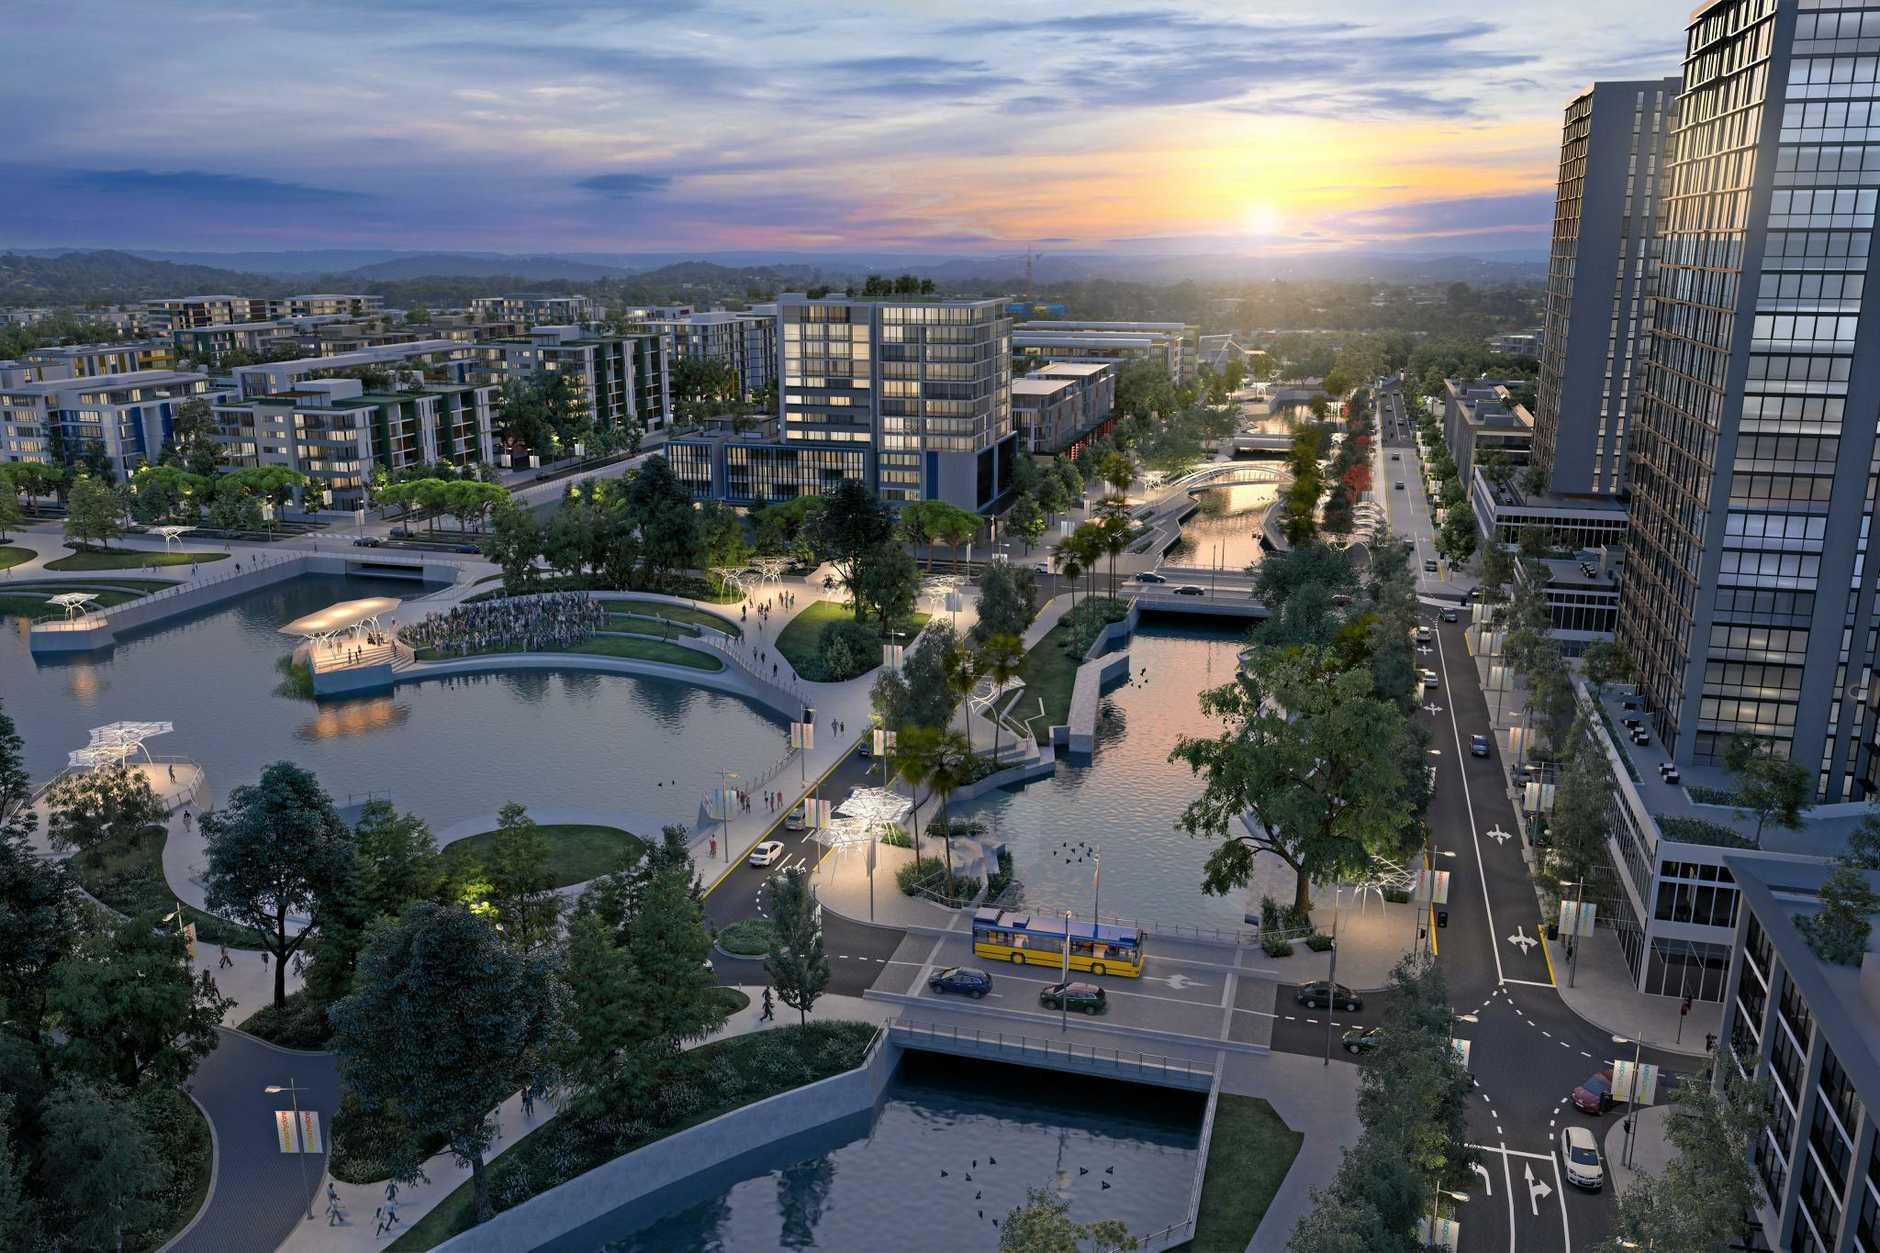 Artists' impressions of the planned Suncentral development for the Maroochydore CBD.